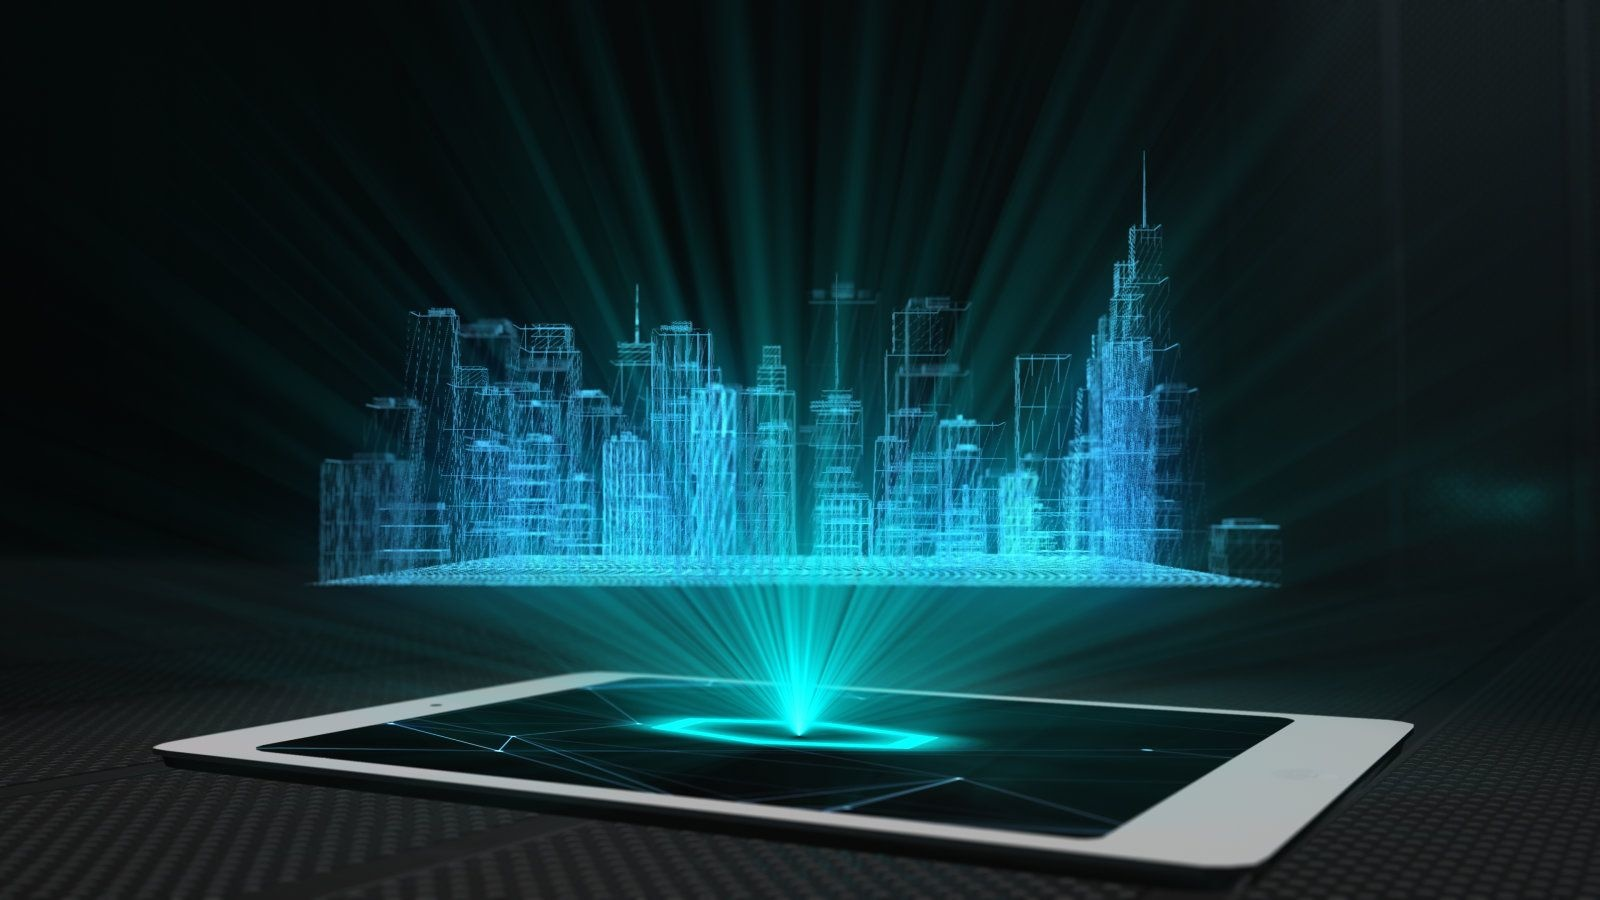 Conceptual design 3d render of a futuristic holographic display mobile smart phone tablet device with hologram projection technology